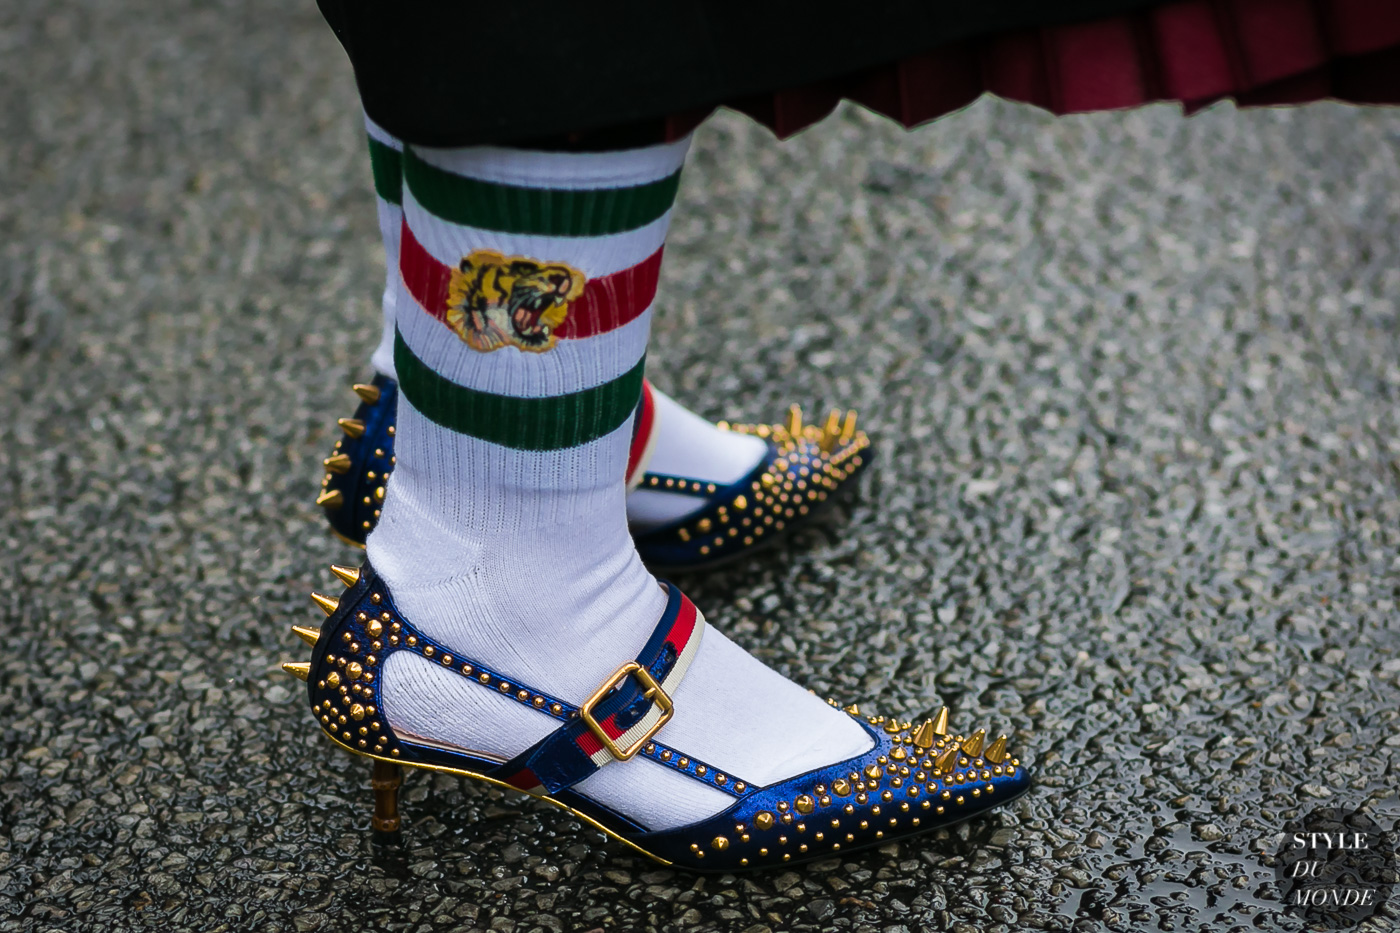 Gucci shoes and socks